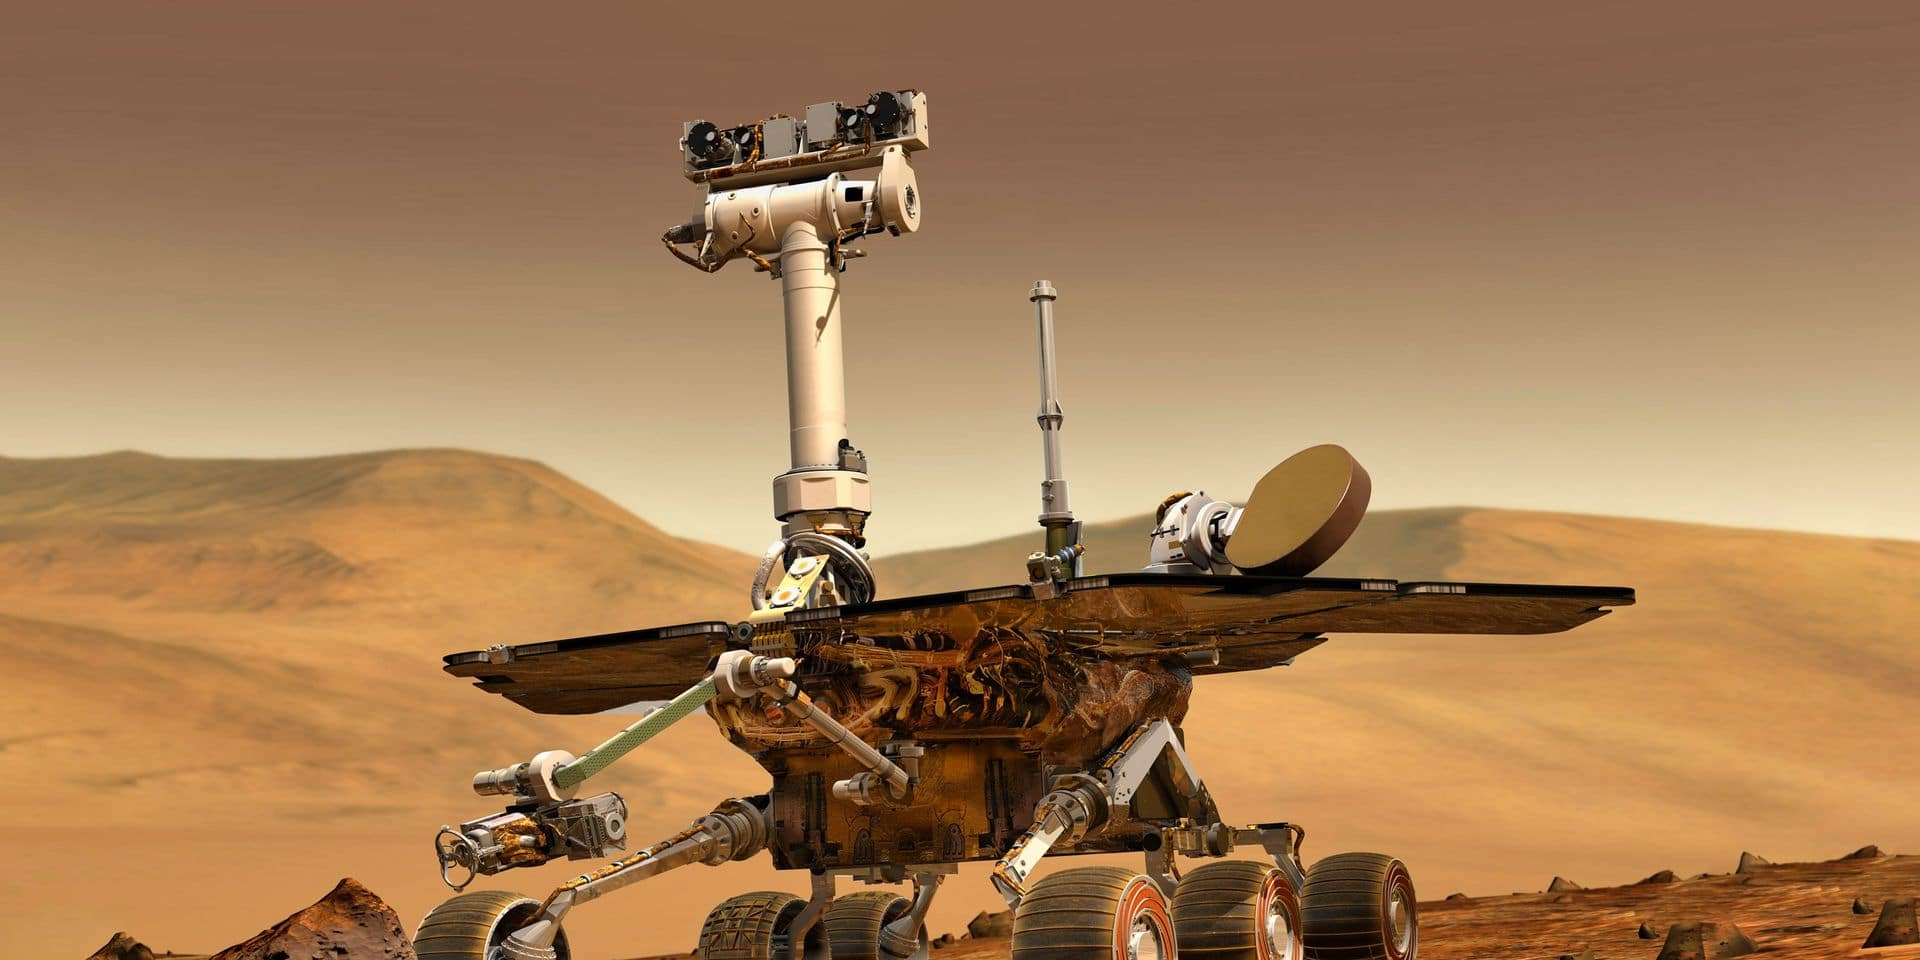 Mars,Explore,Mission.,The,Perseverance,Rover,Deploys,Its,Equipment,Against